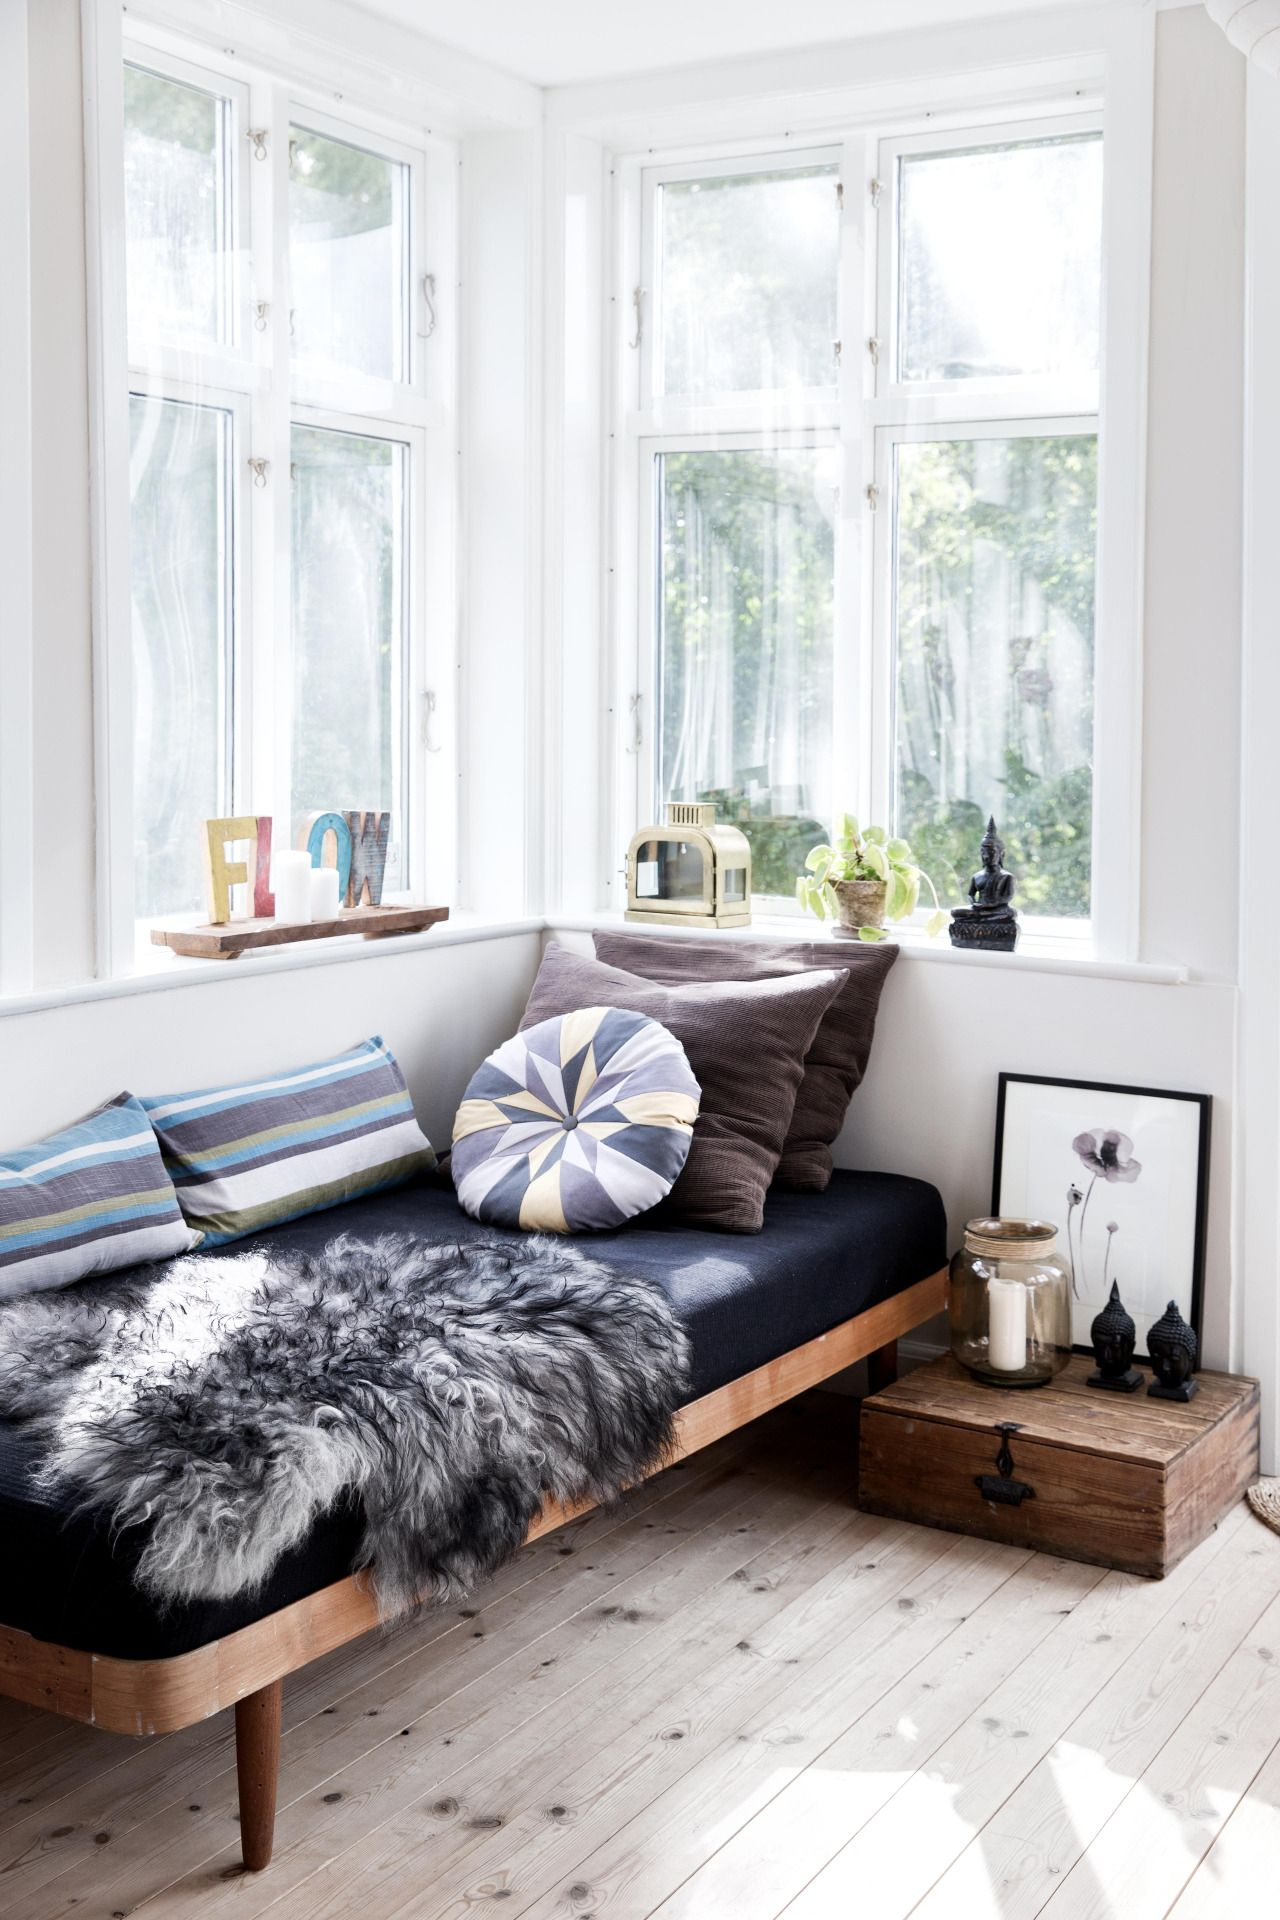 12 Daybed Ideas We Re Daydreaming About Natural Home Decor